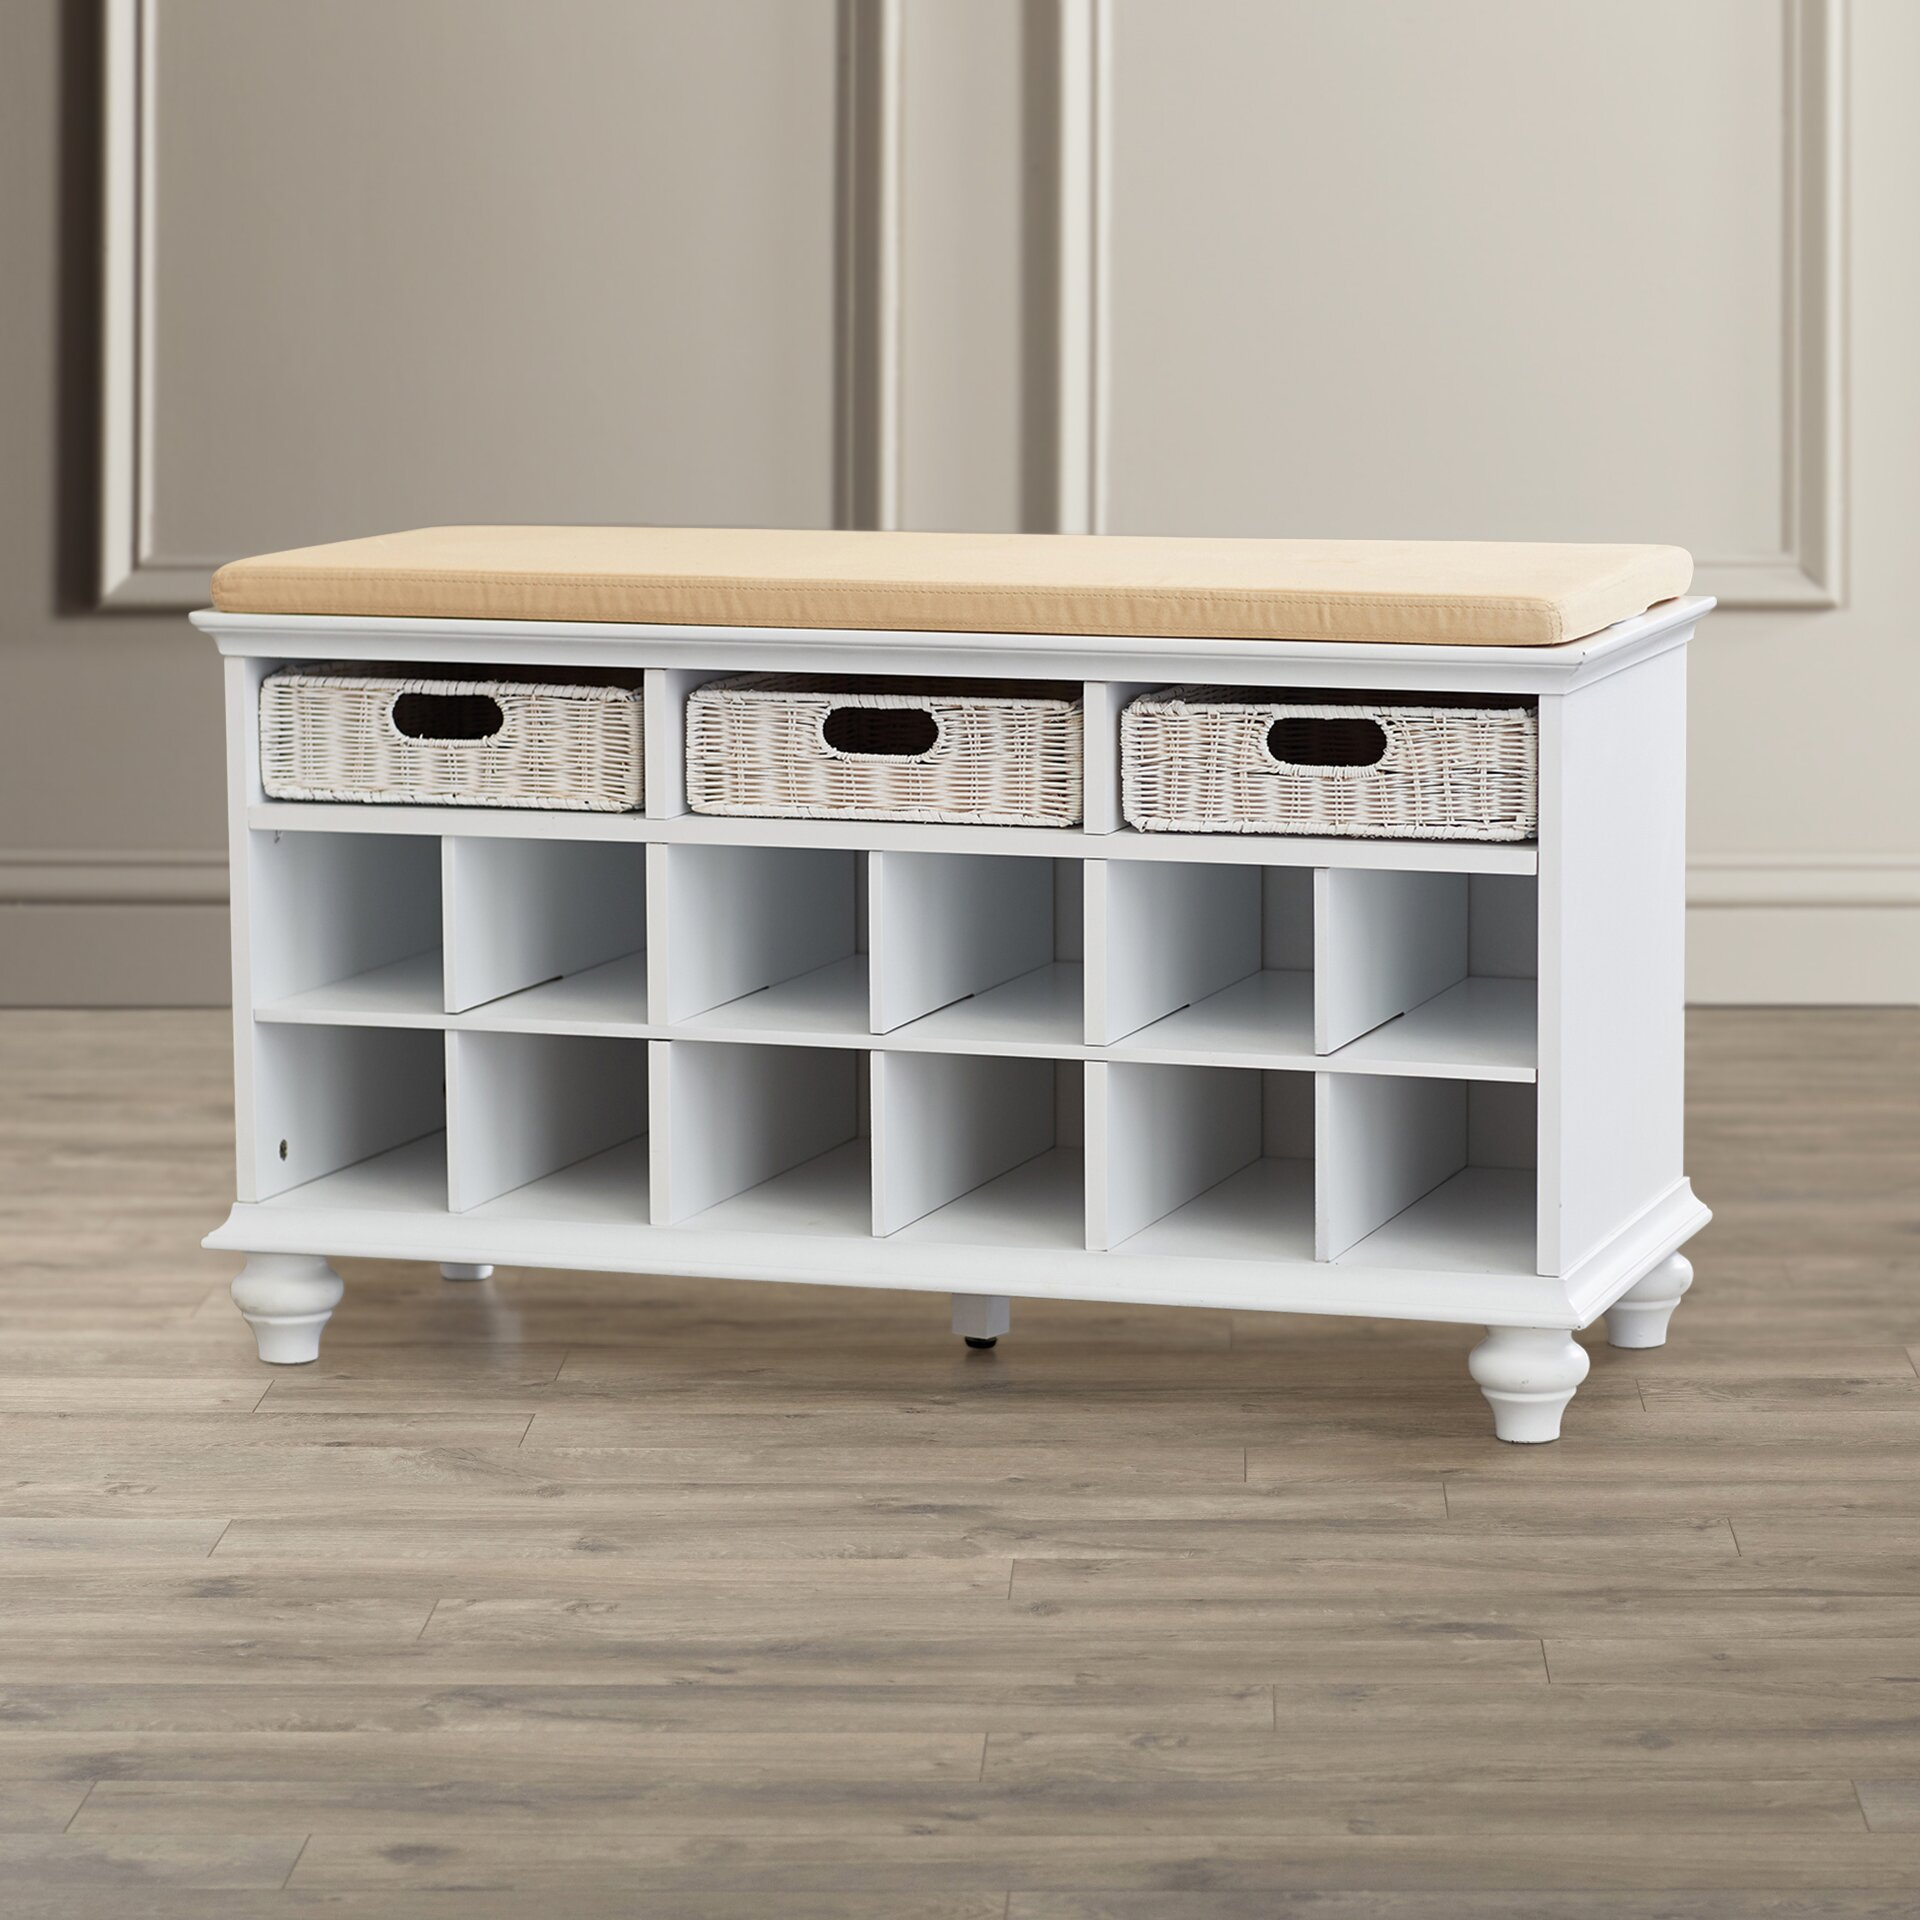 Darby Home Co Shoe Storage Bench & Reviews | Wayfair